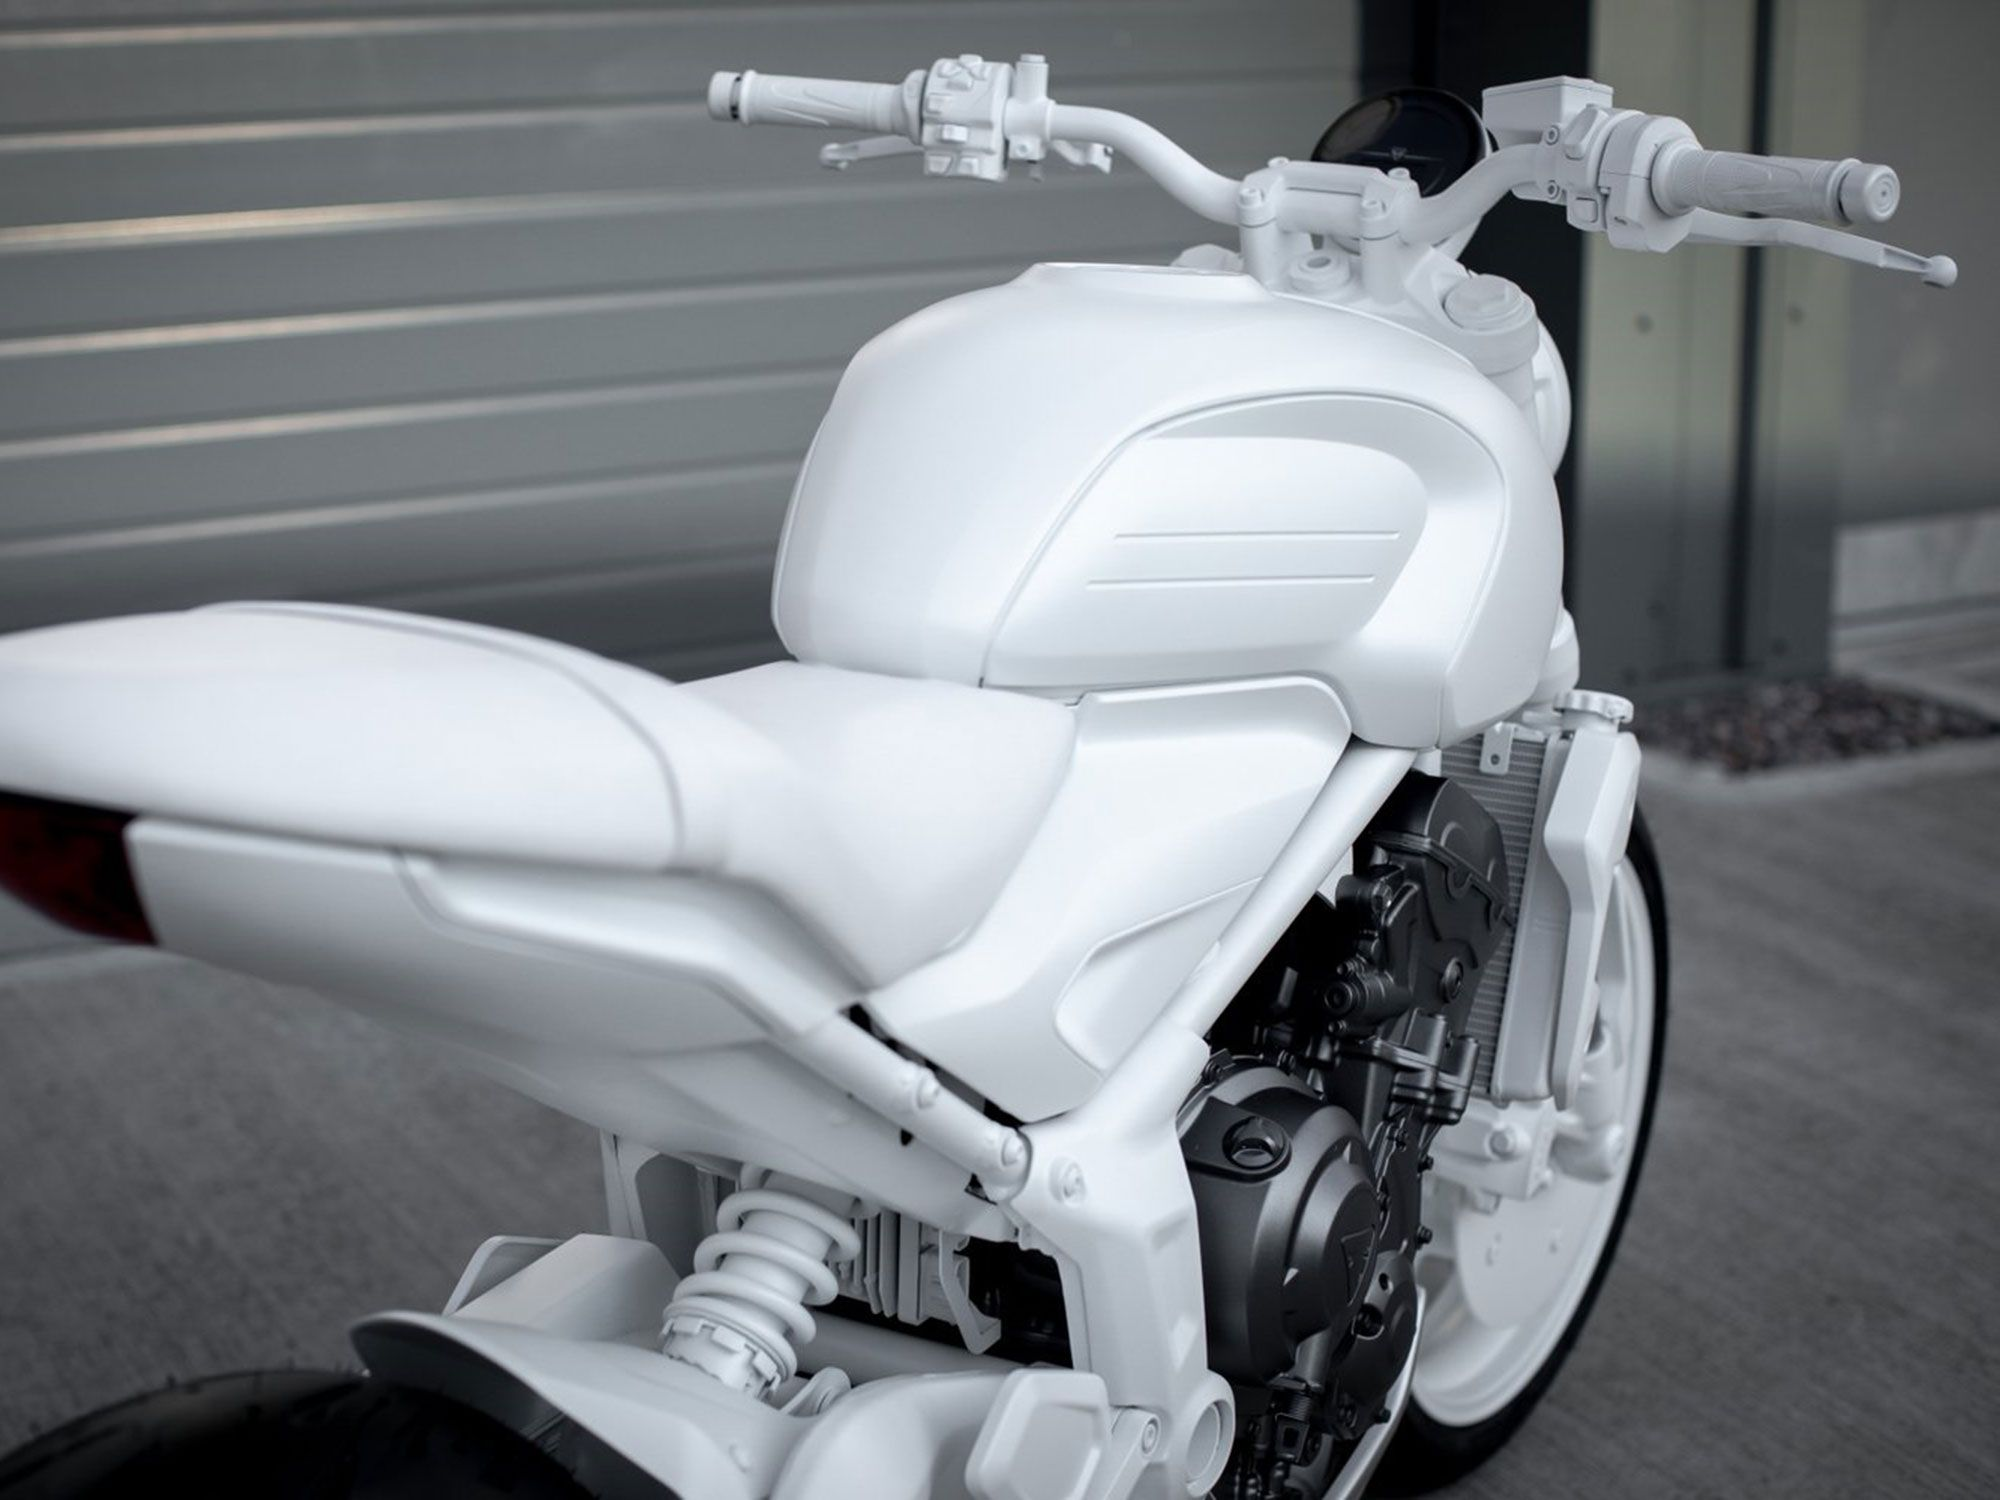 With a pillion portion reaching almost to the taillight, the new bike borrows elements from the '07 Street Triple, though the retro tank shape is a clear nod to the firm's past.